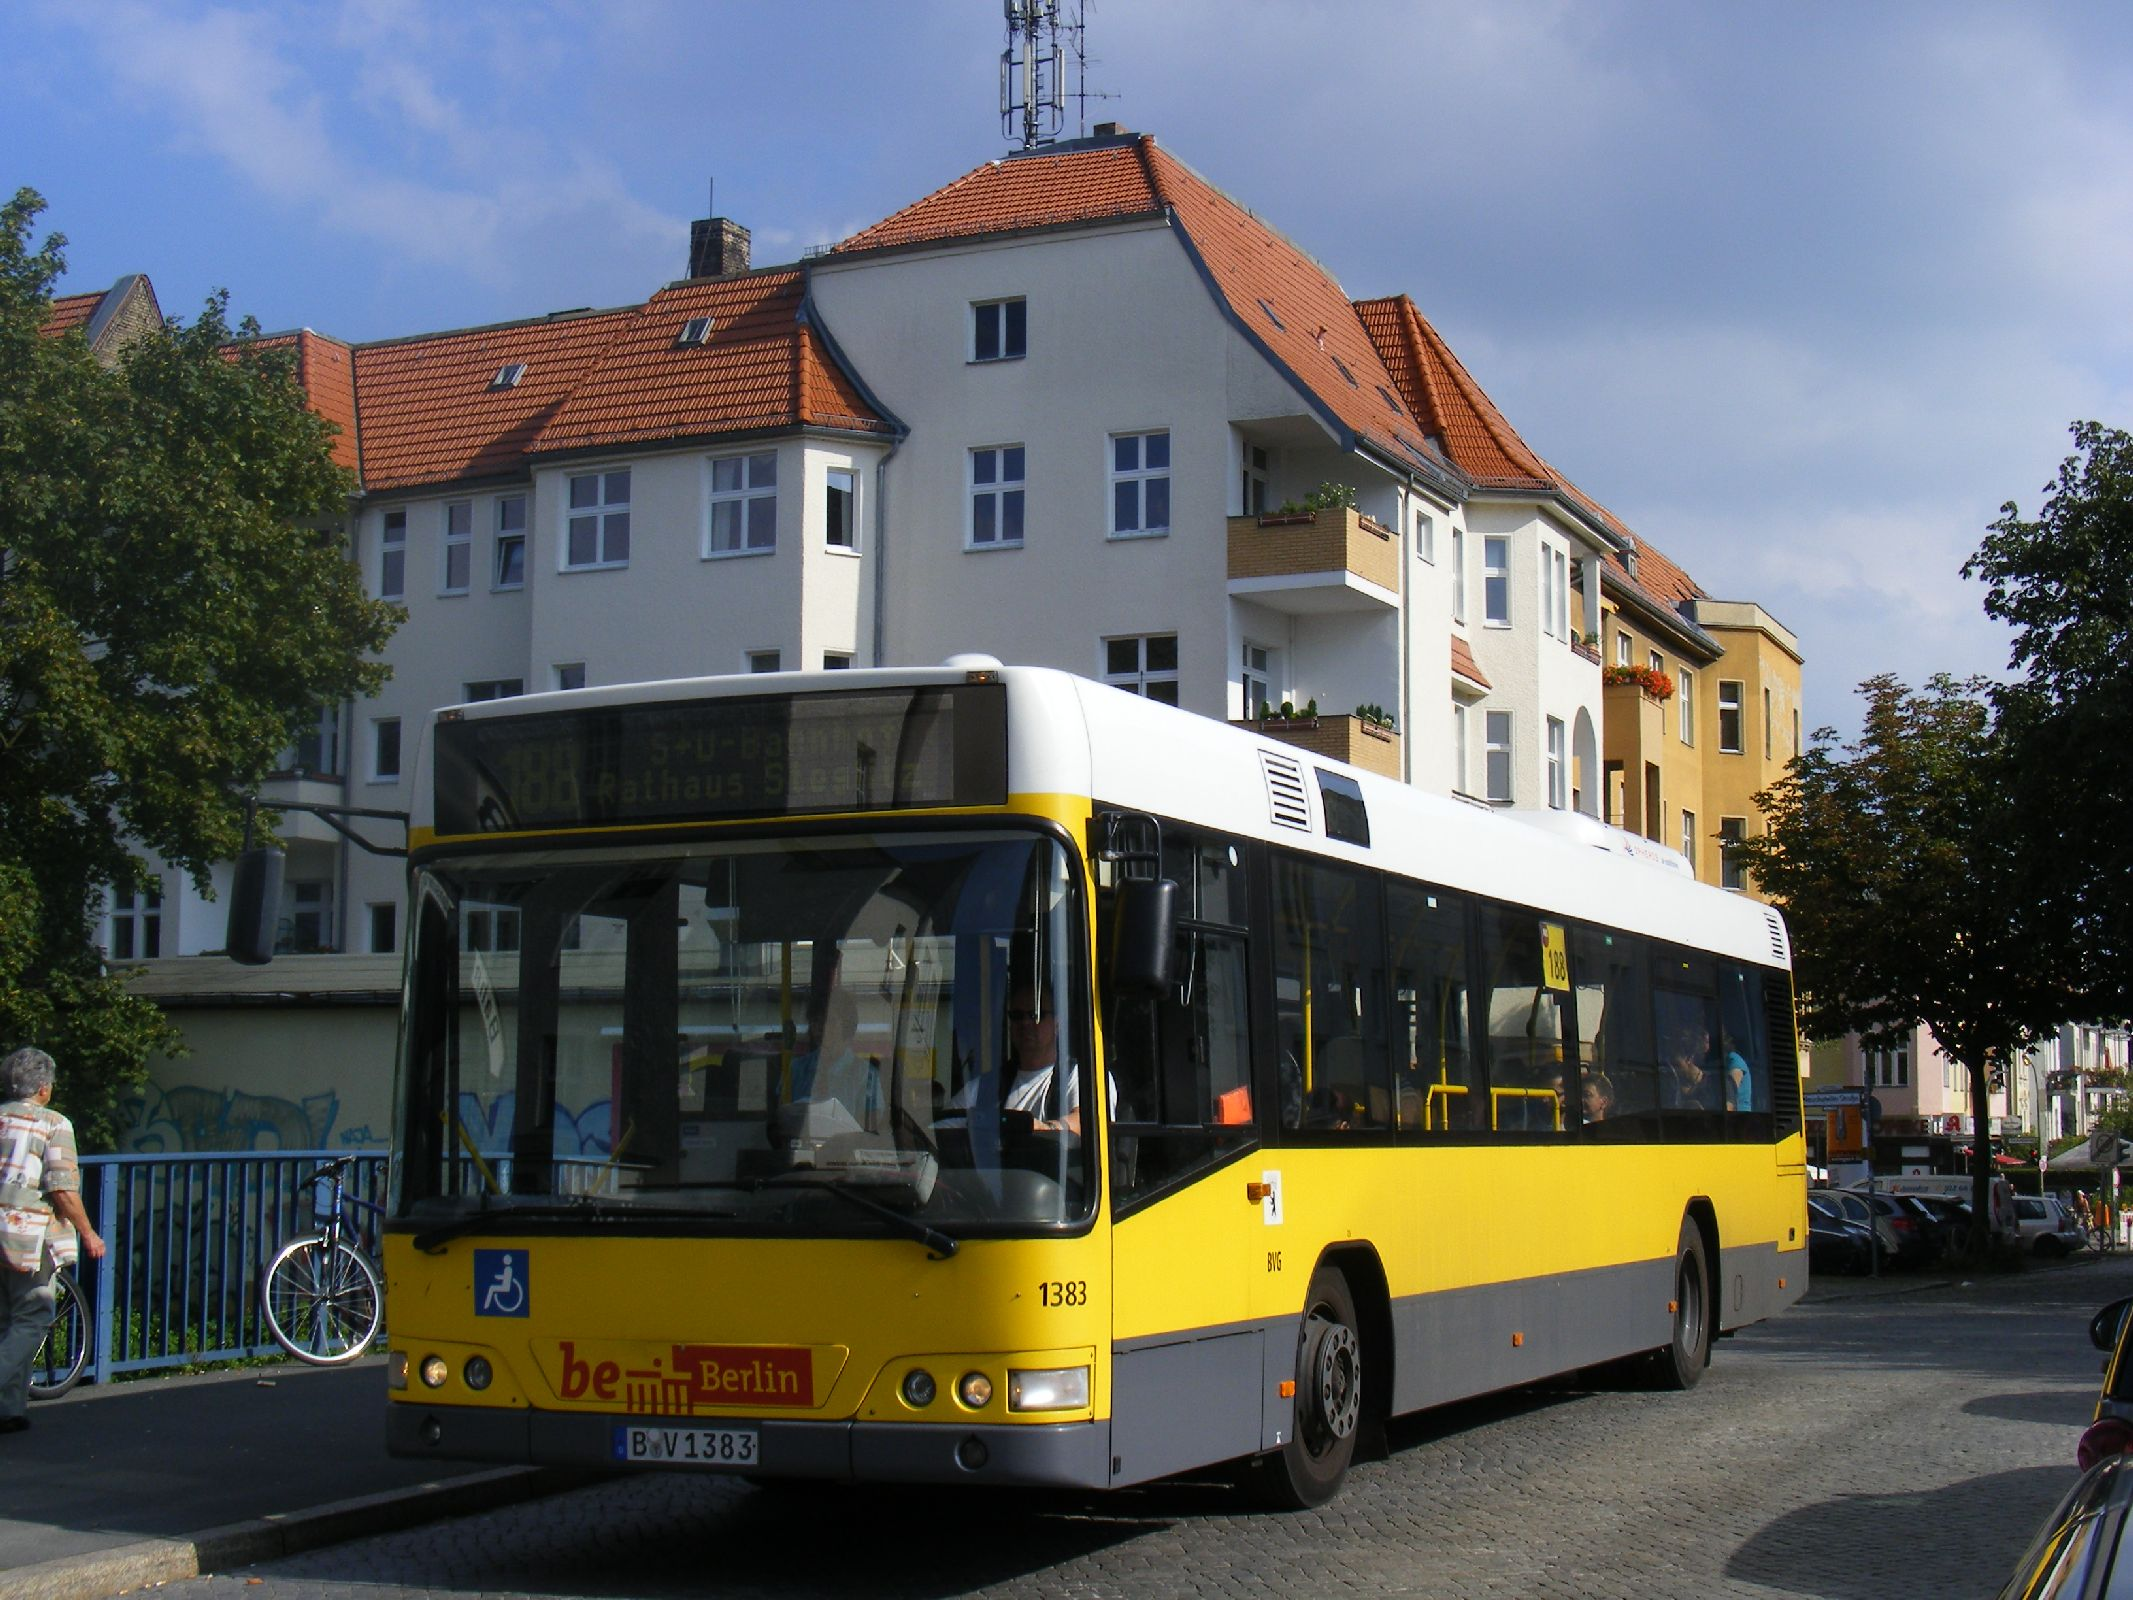 file bvg berlin bus b v 1383 linie 188 s bf botanischer garten flickr. Black Bedroom Furniture Sets. Home Design Ideas